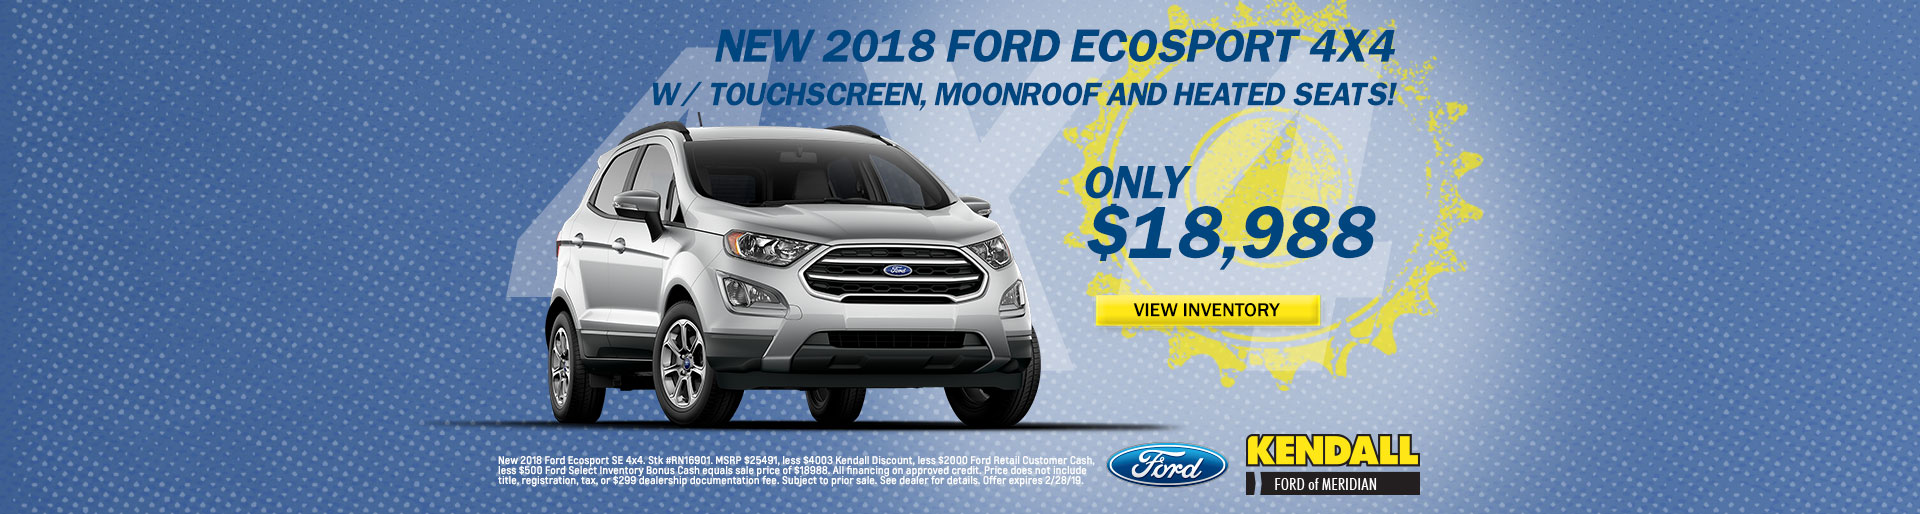 Kendall Ford Meridian >> New Certified Ford Dealership Used Cars For Sale Kendall Ford